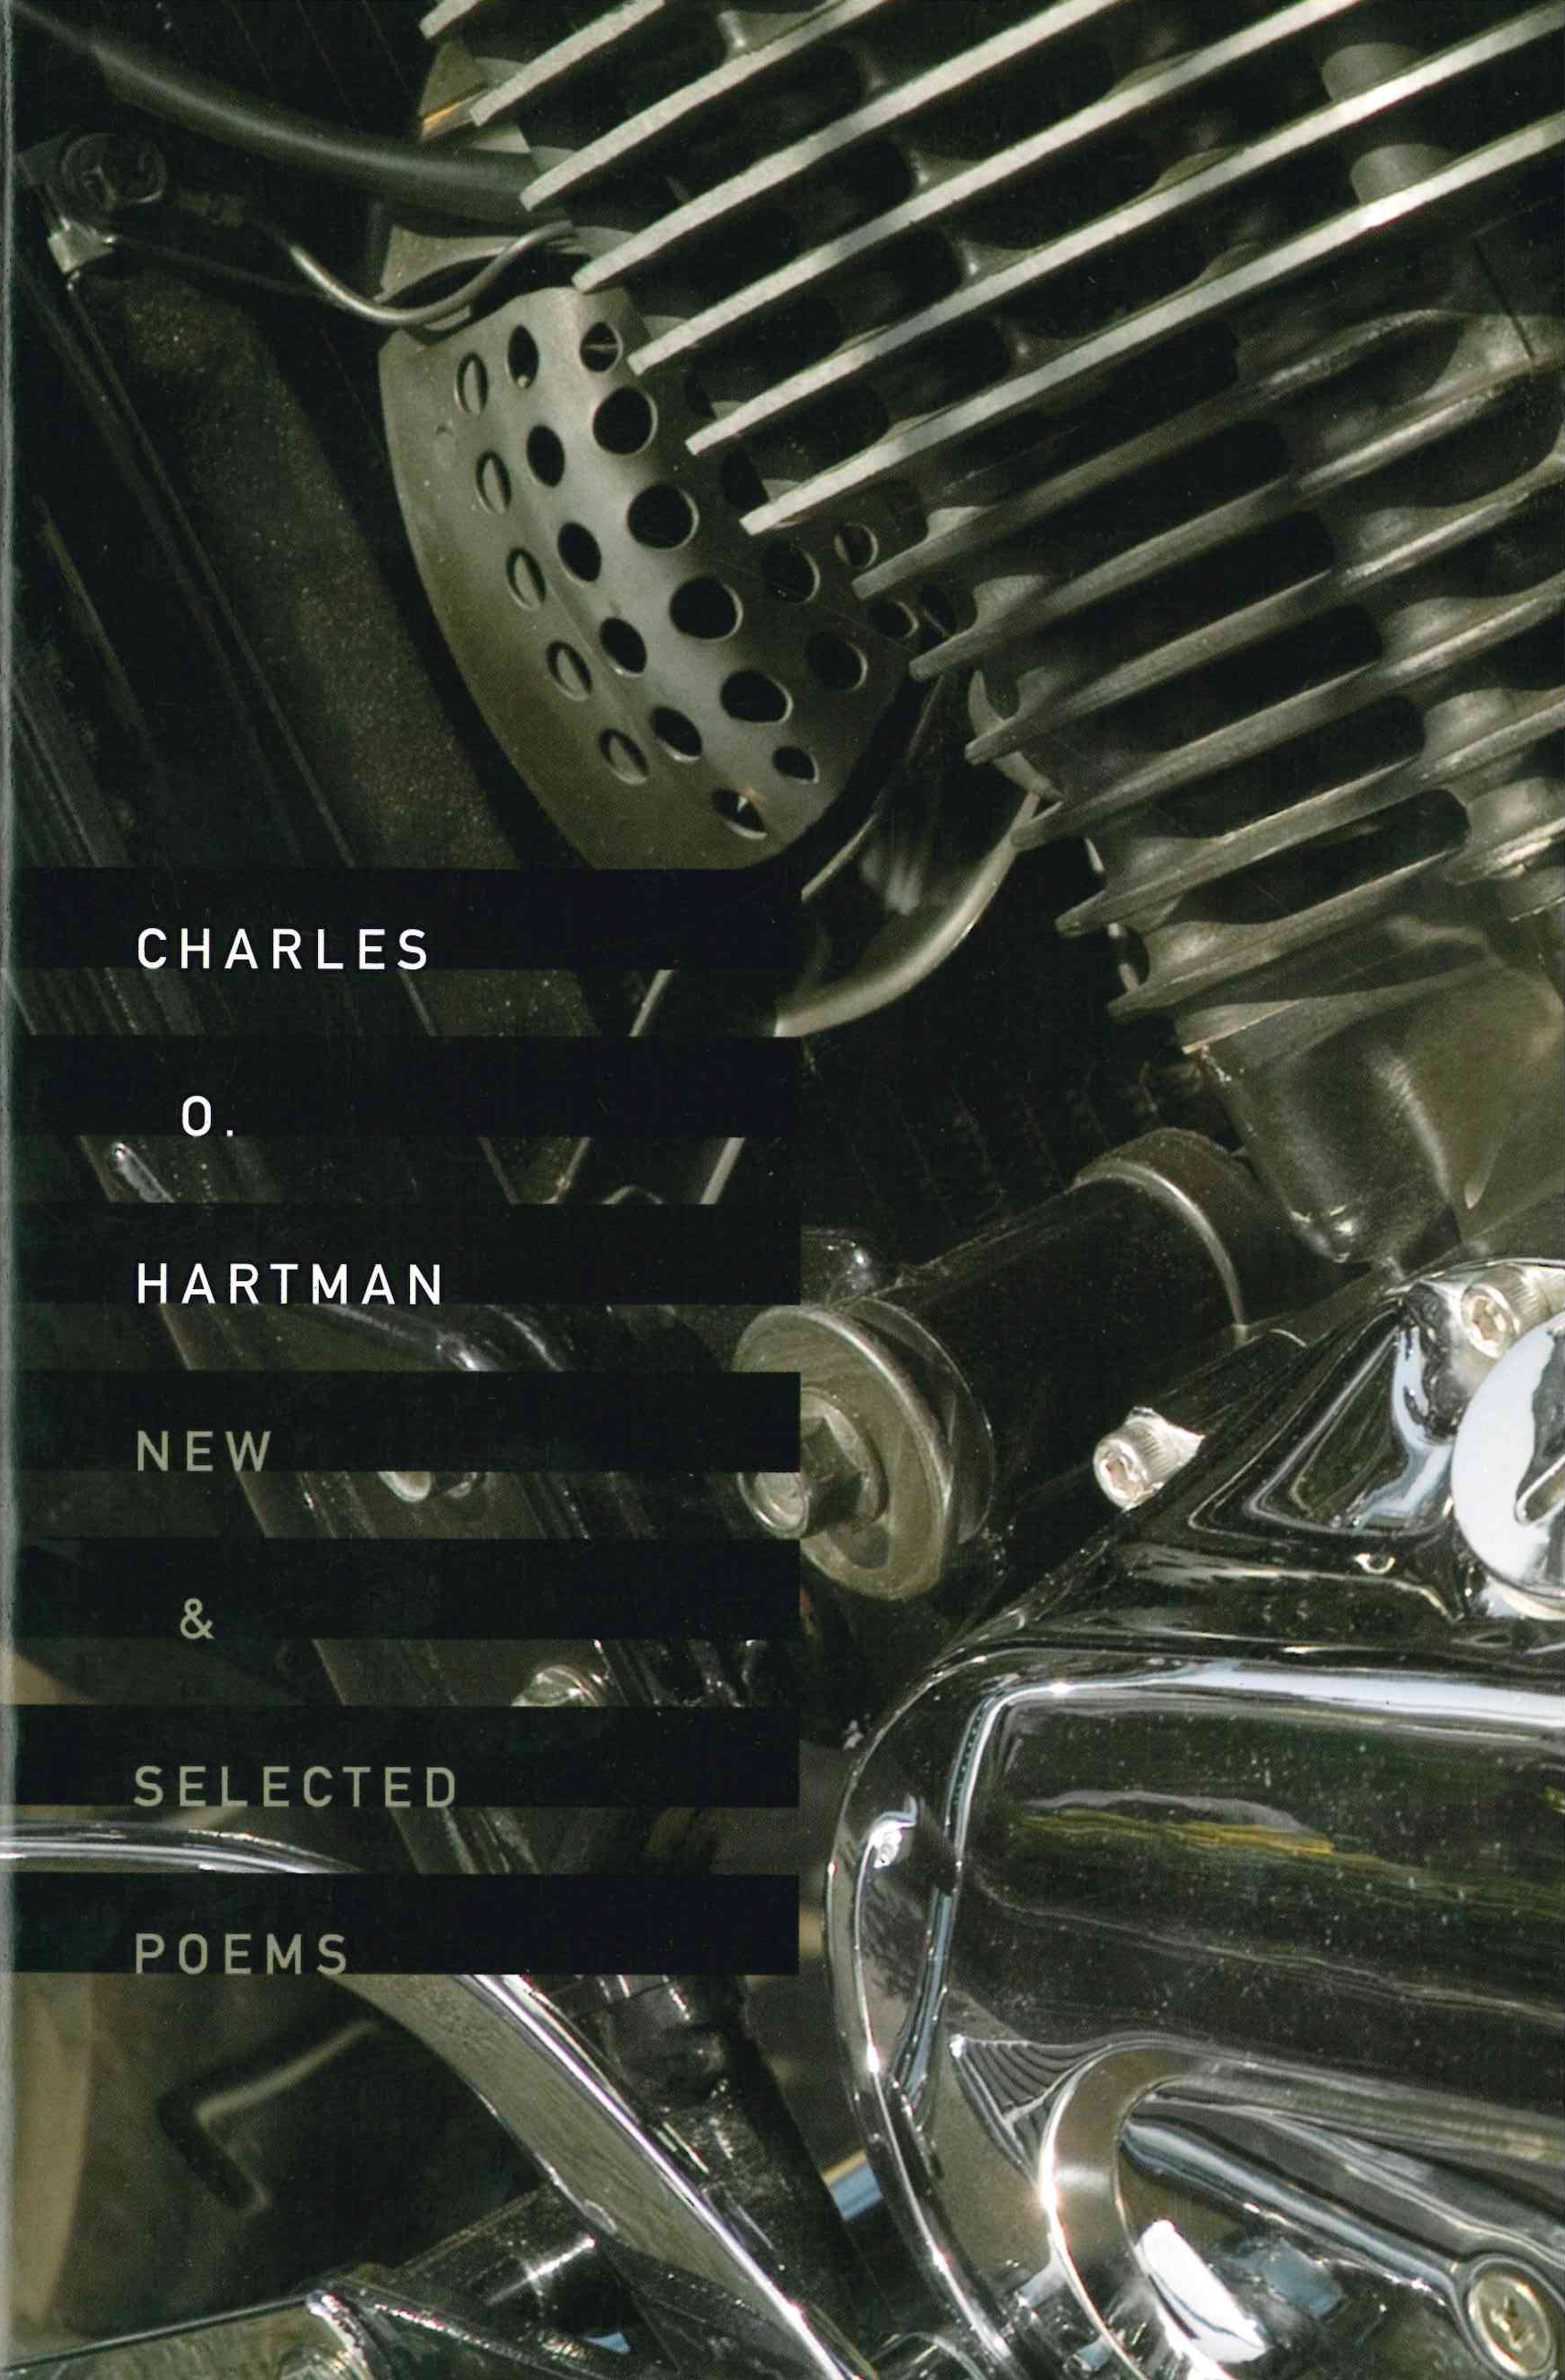 New & Selected Poems, Charles O Hartman